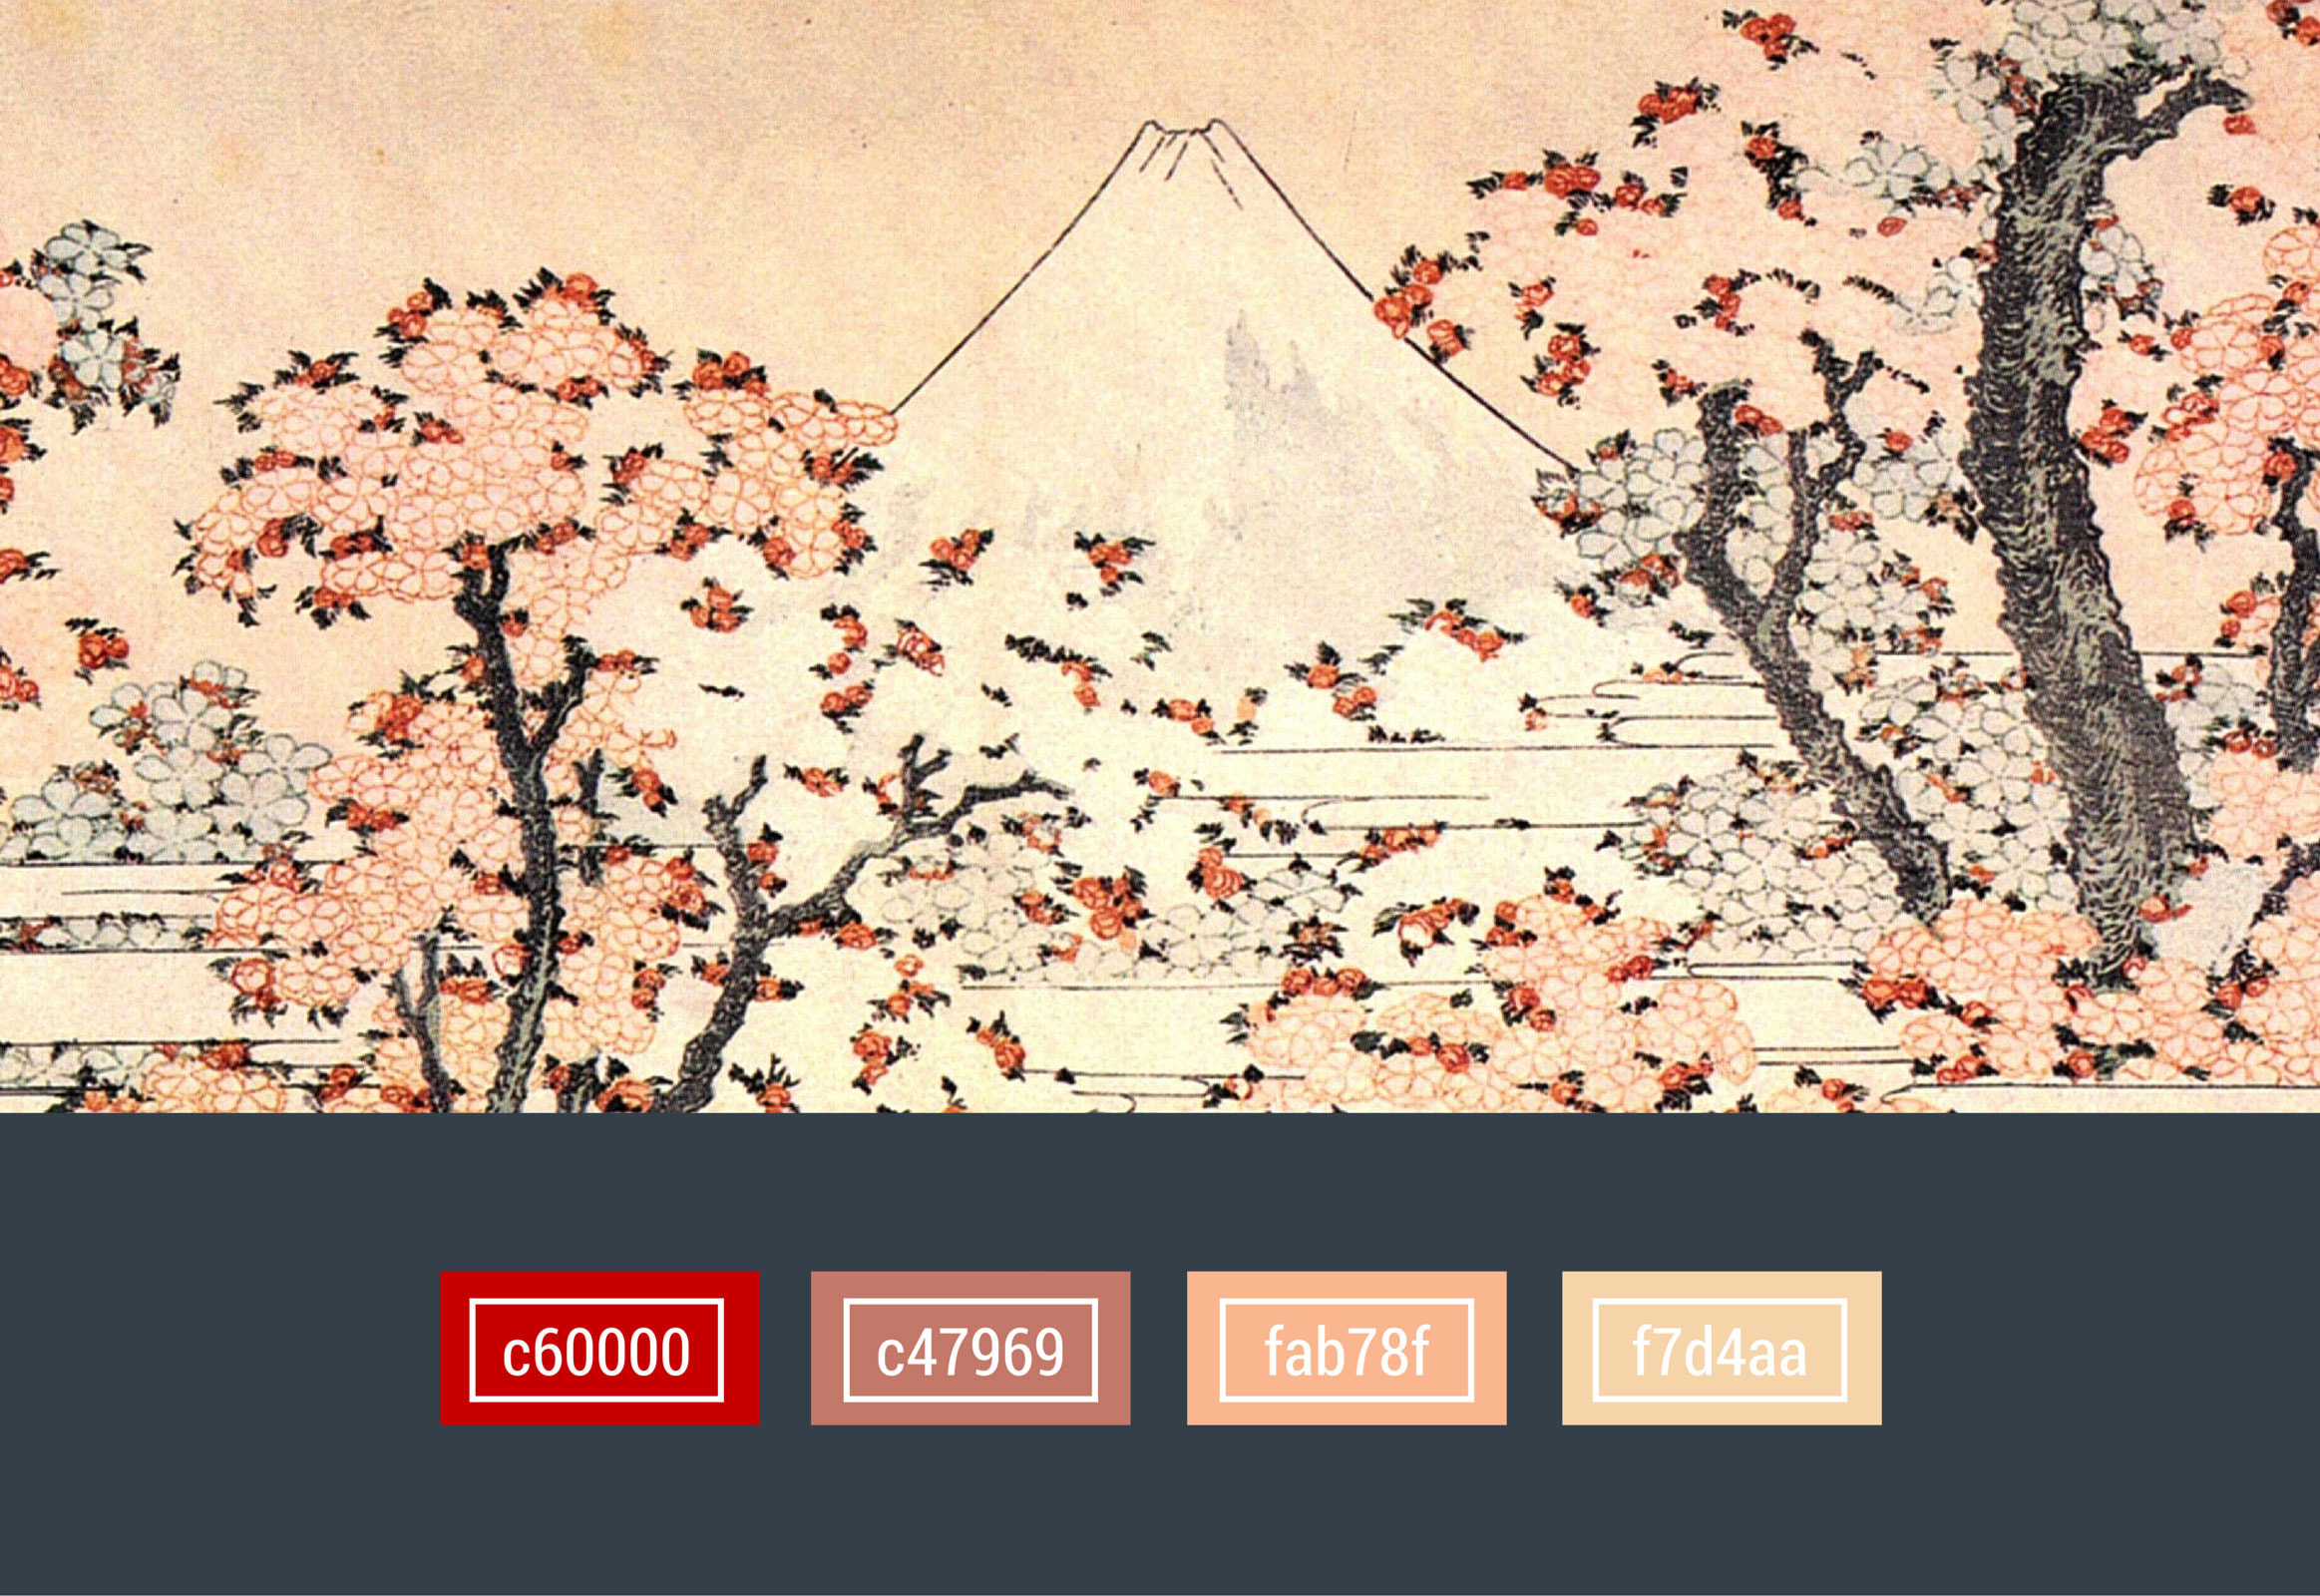 colors used in The Edo Period